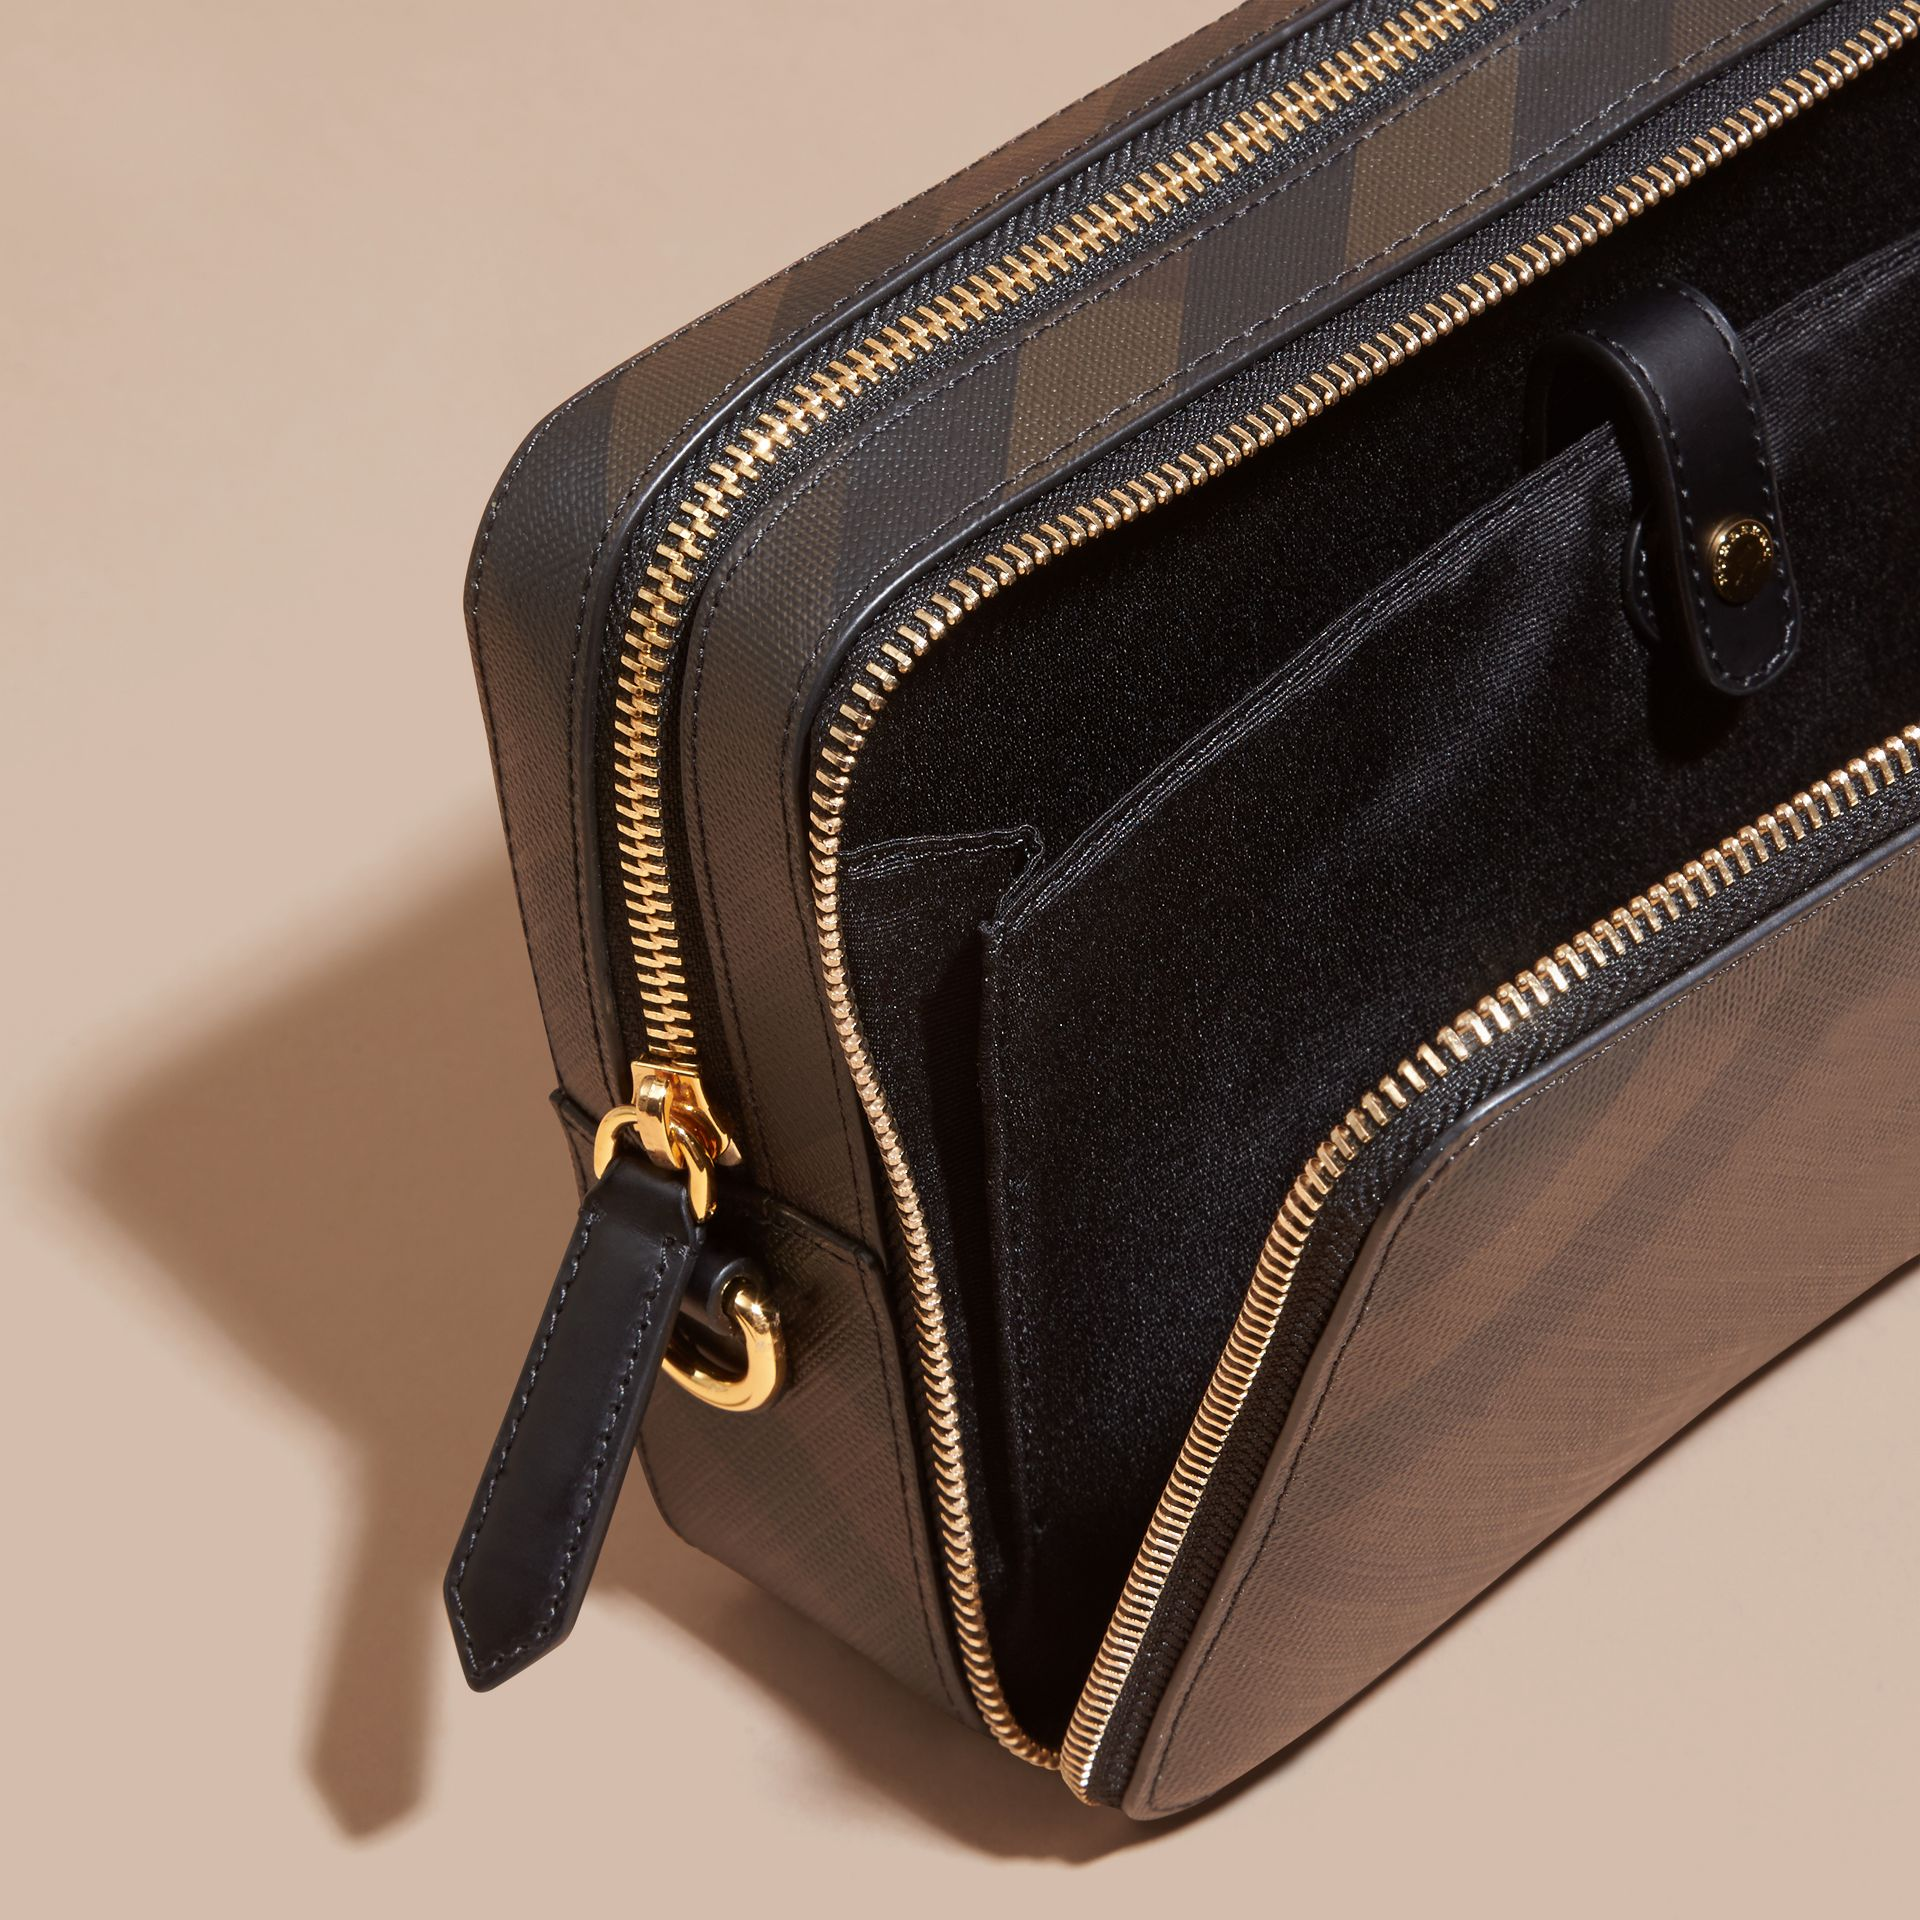 Leather-trimmed London Check Pouch in Chocolate/black - Men | Burberry United Kingdom - gallery image 4